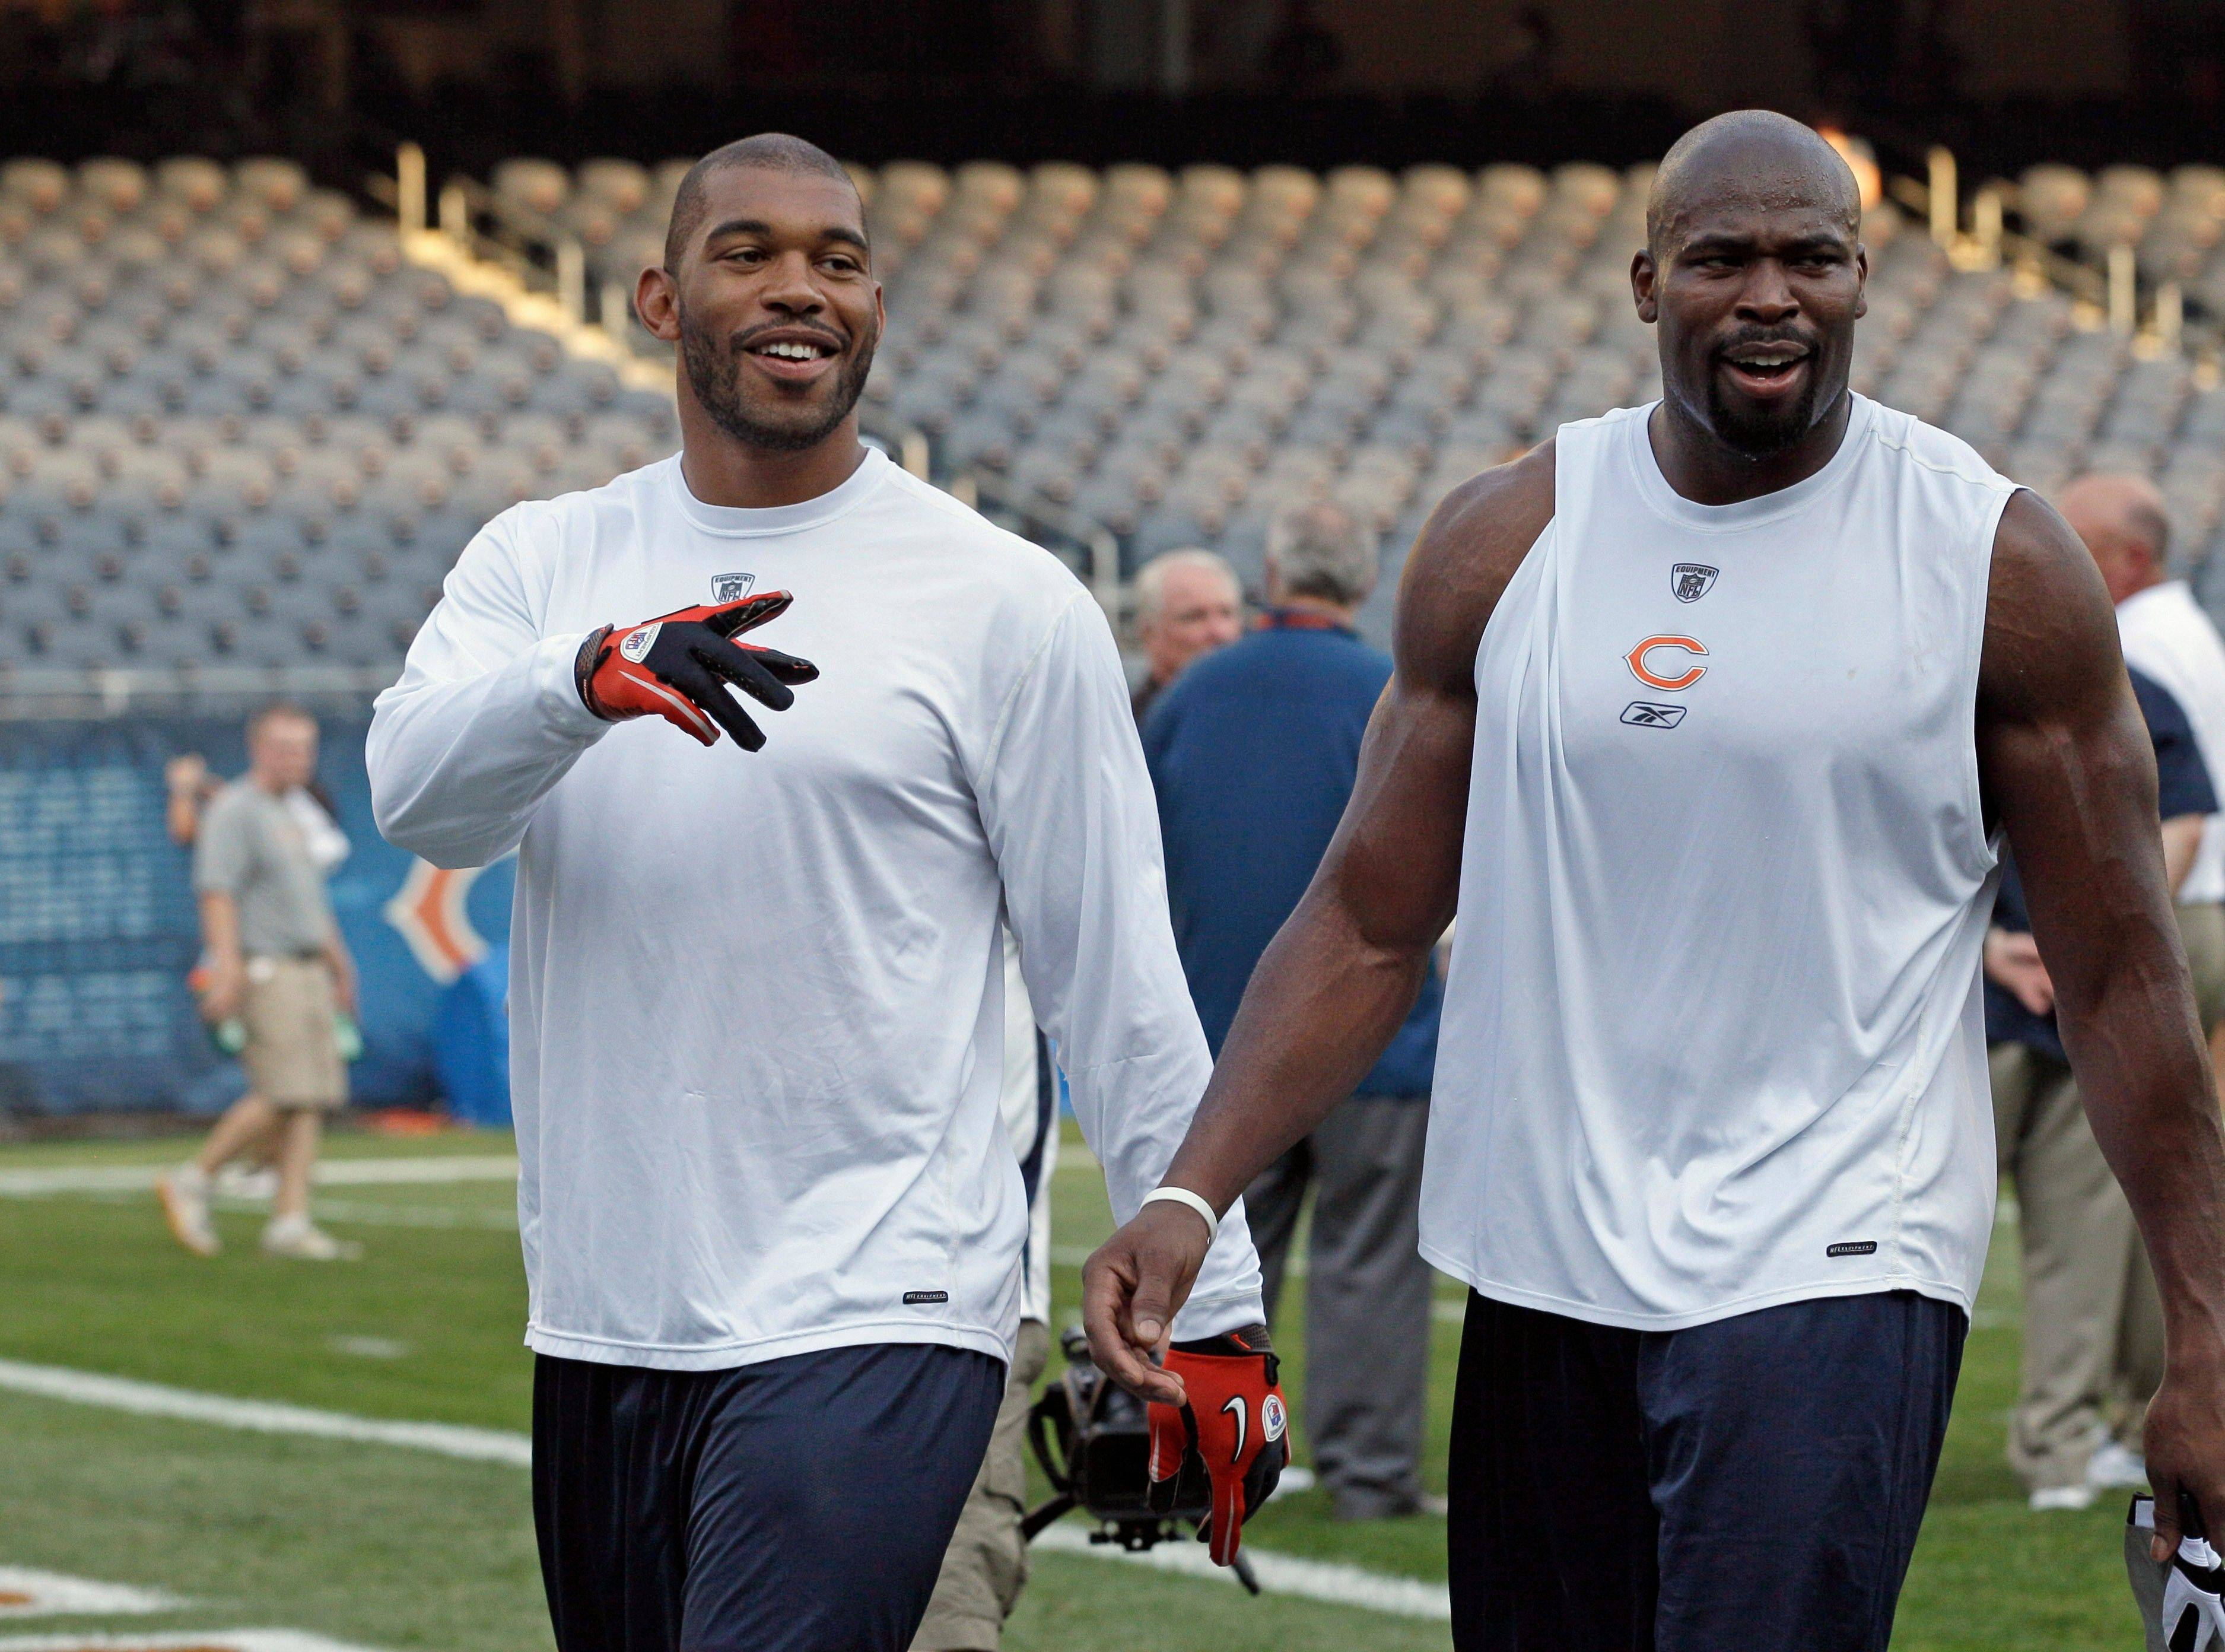 Chicago Bears defensive end Julius Peppers, left, and defensive lineman Israel Idonije walk off the field during warm-ups.